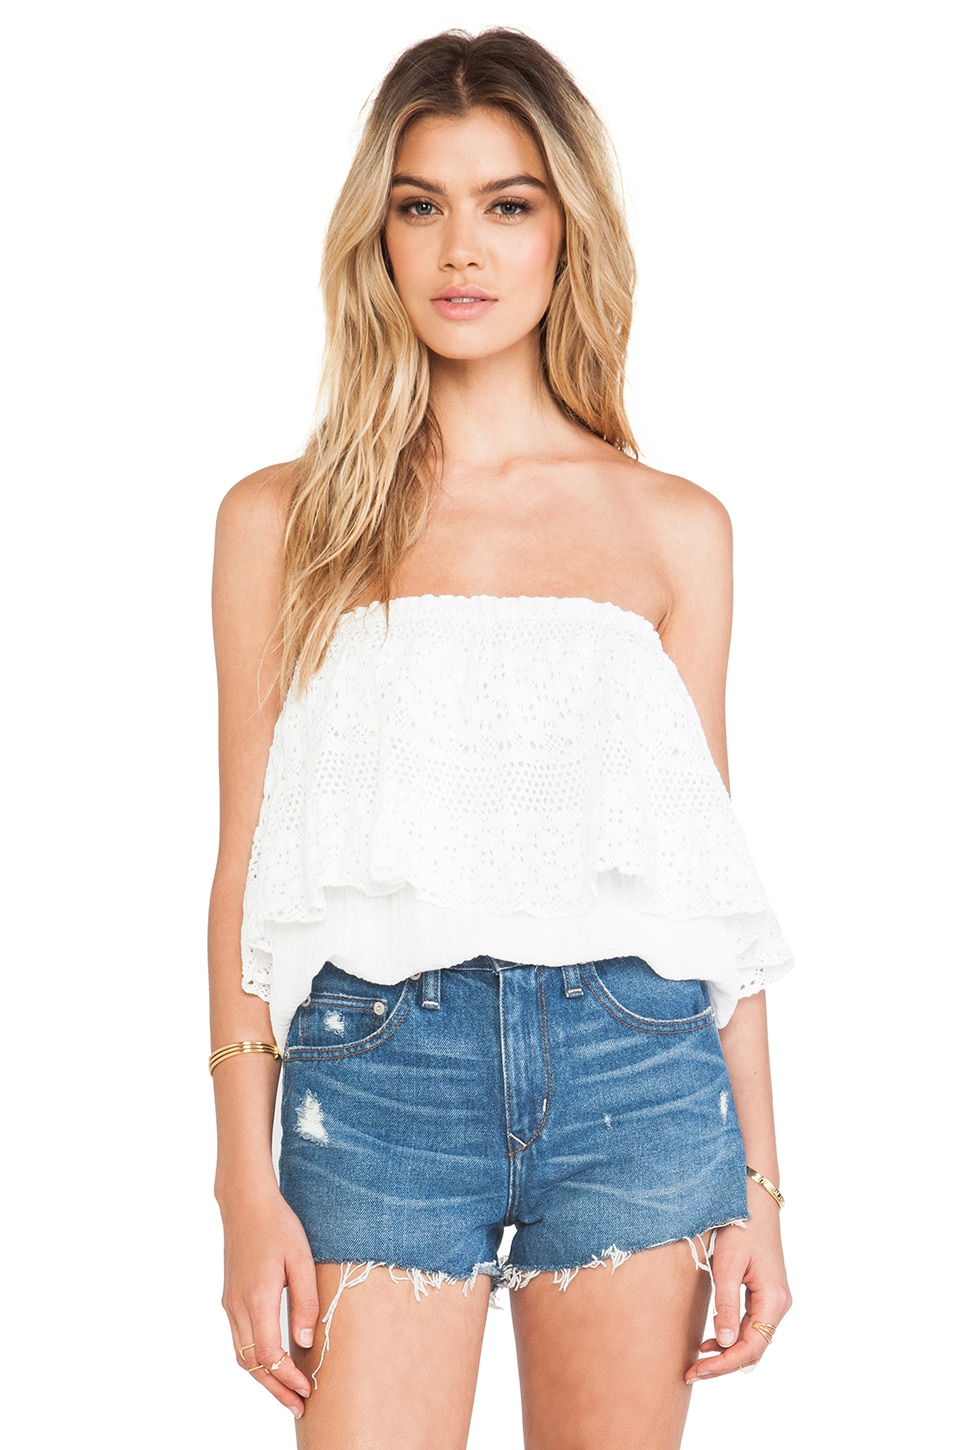 jen's pirate booty jamaican tube top in white | revolve